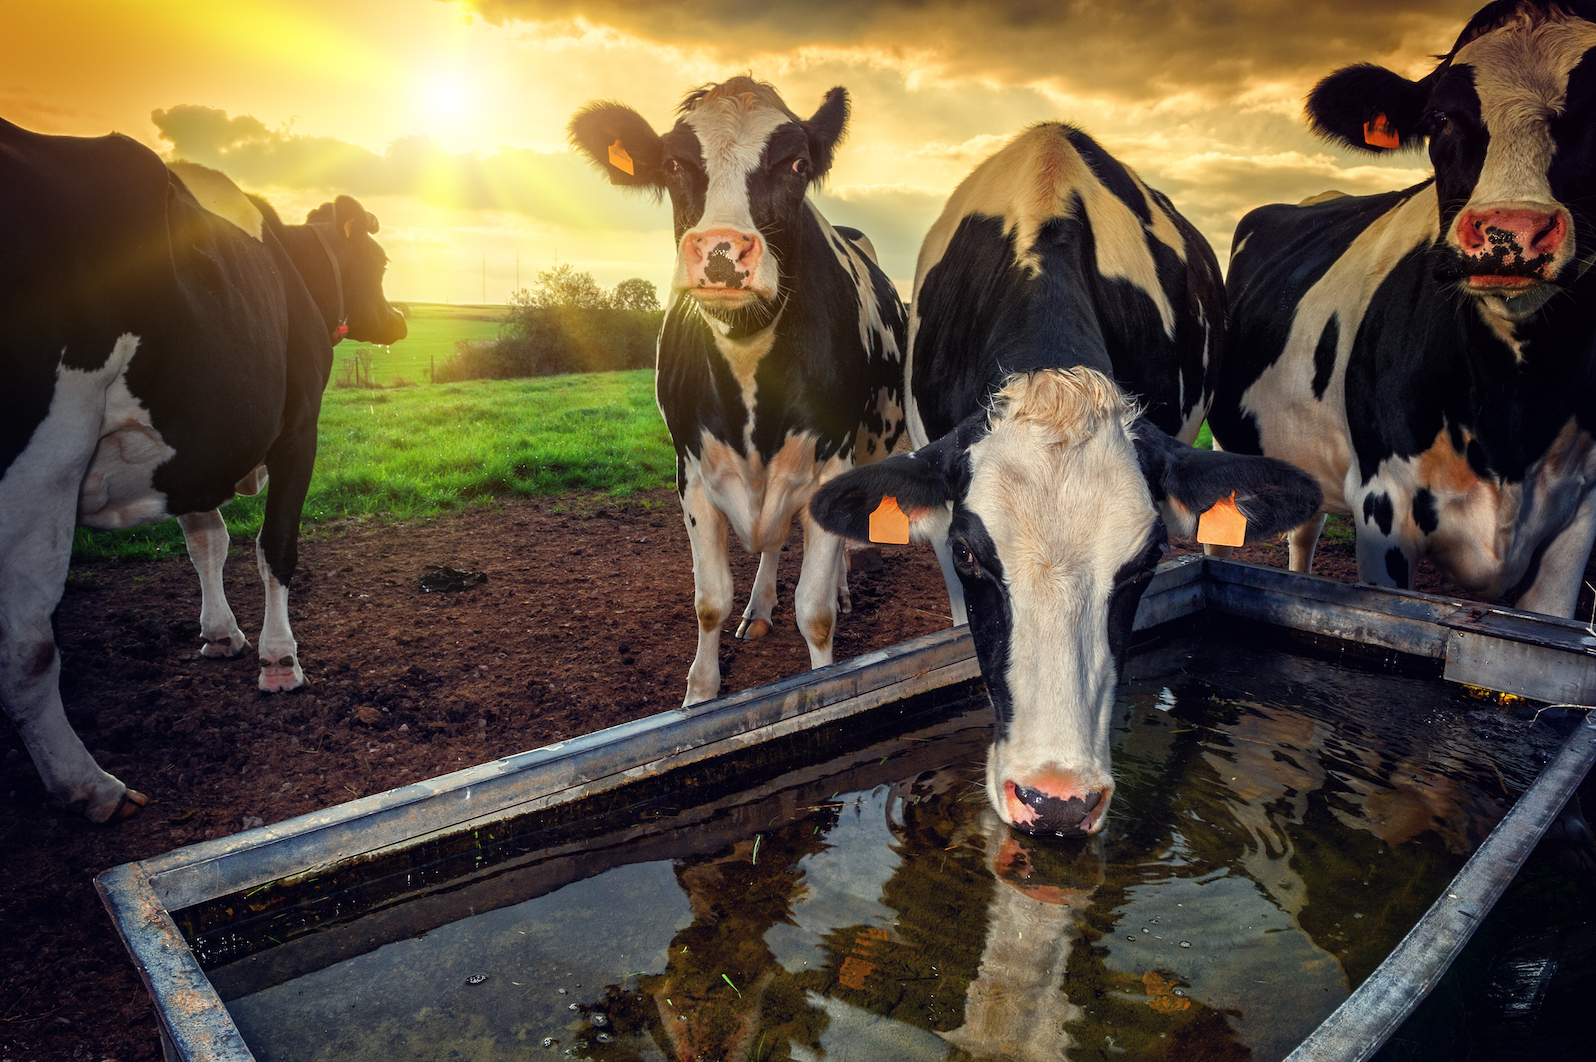 Livestock is the largest user of land resources and production of feed represents almost 80 percent of Earth's total agricultural land.